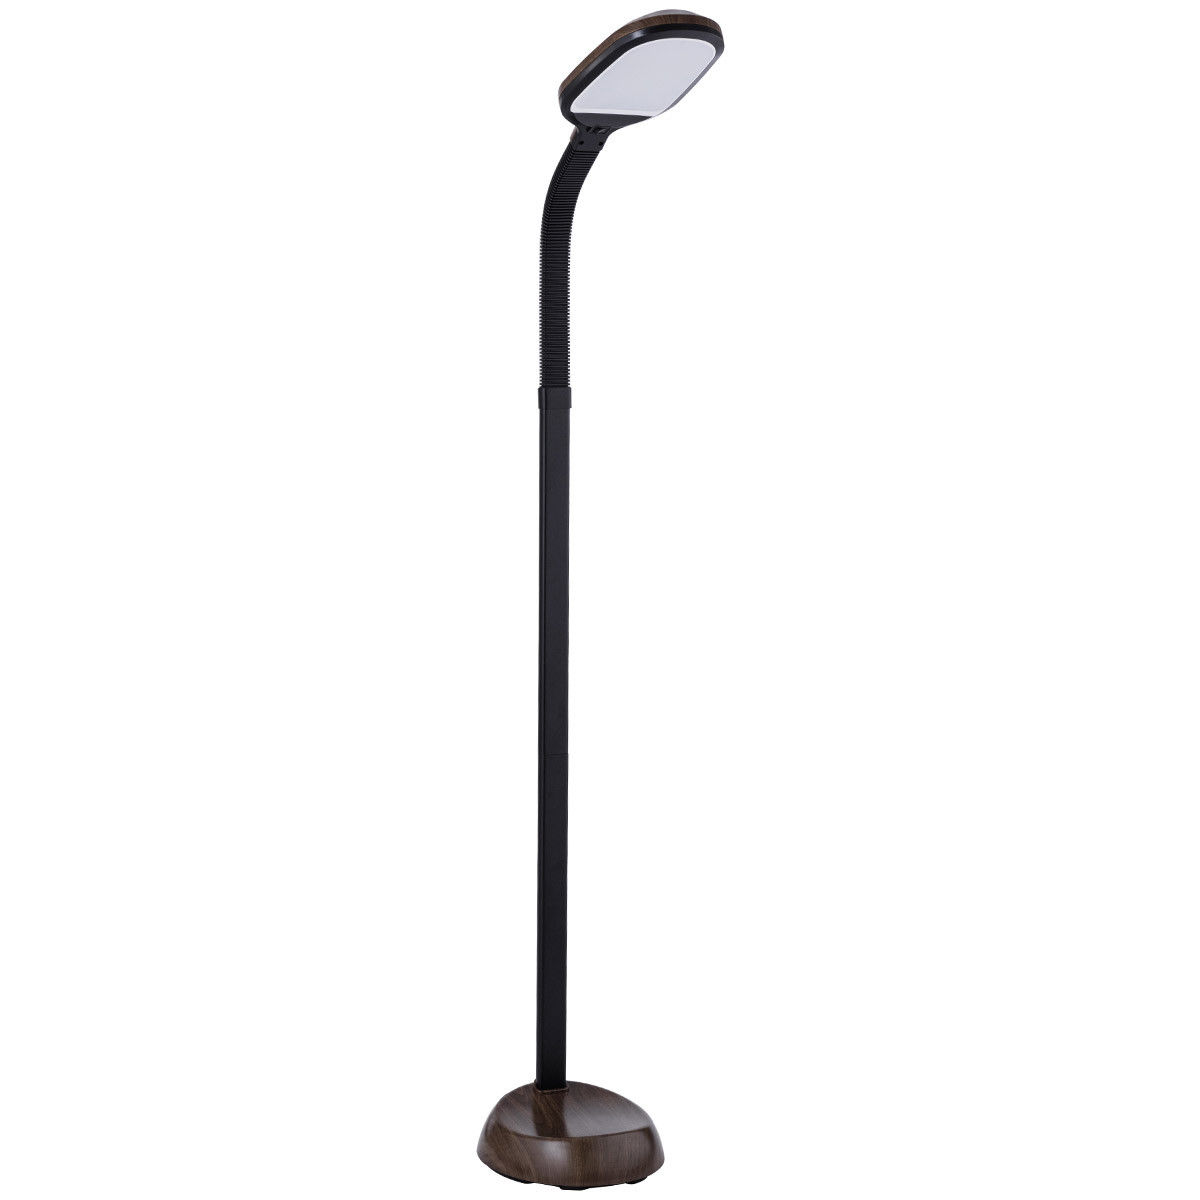 Costway LED Reading Light Standing Floor Lamp Adjustable Gooseneck Energy Saving Oak by Costway